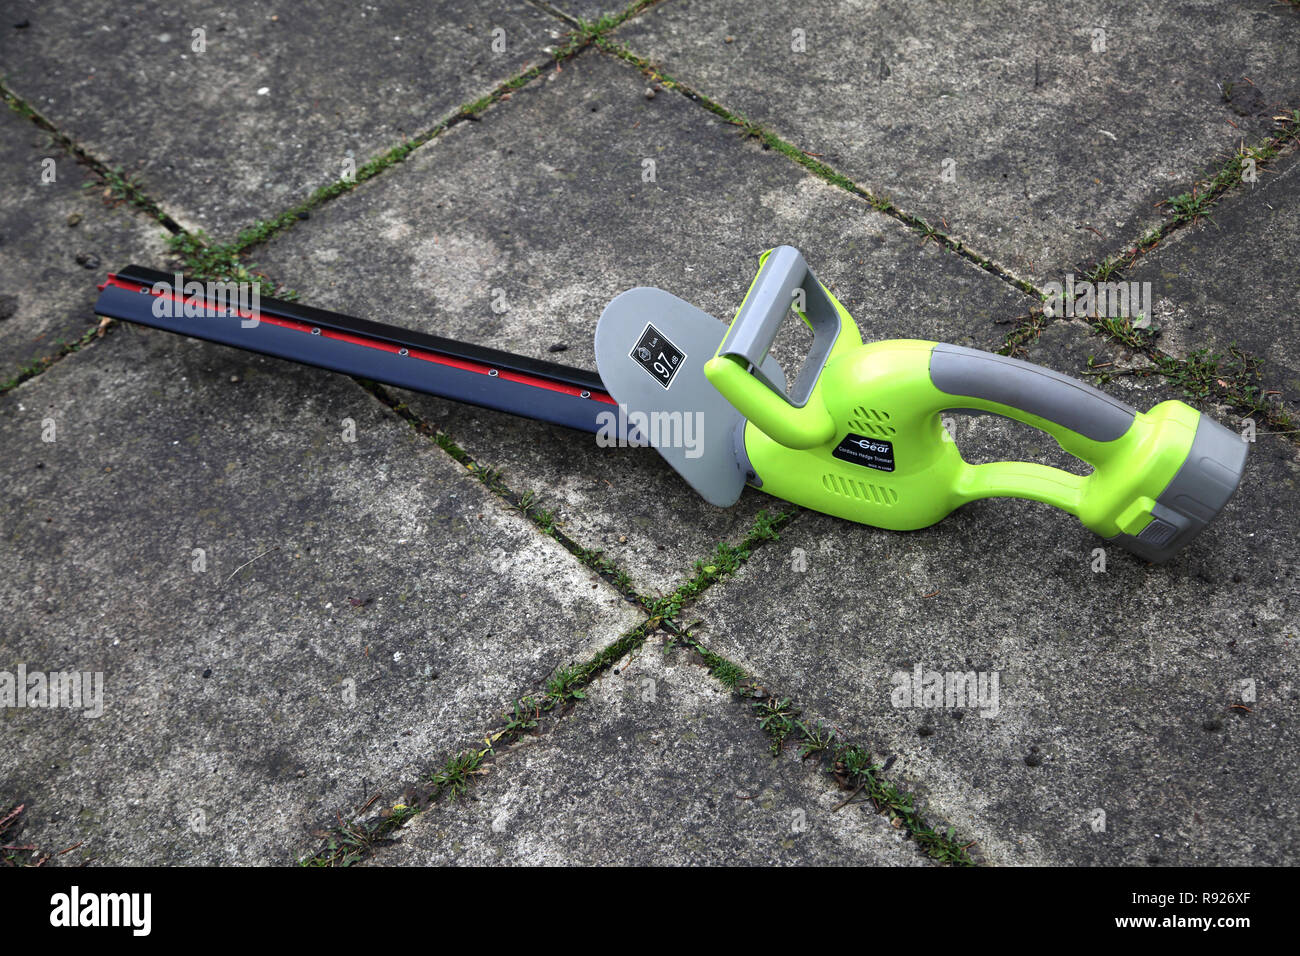 Garden Gear Cordless Hedge Trimmer - Stock Image